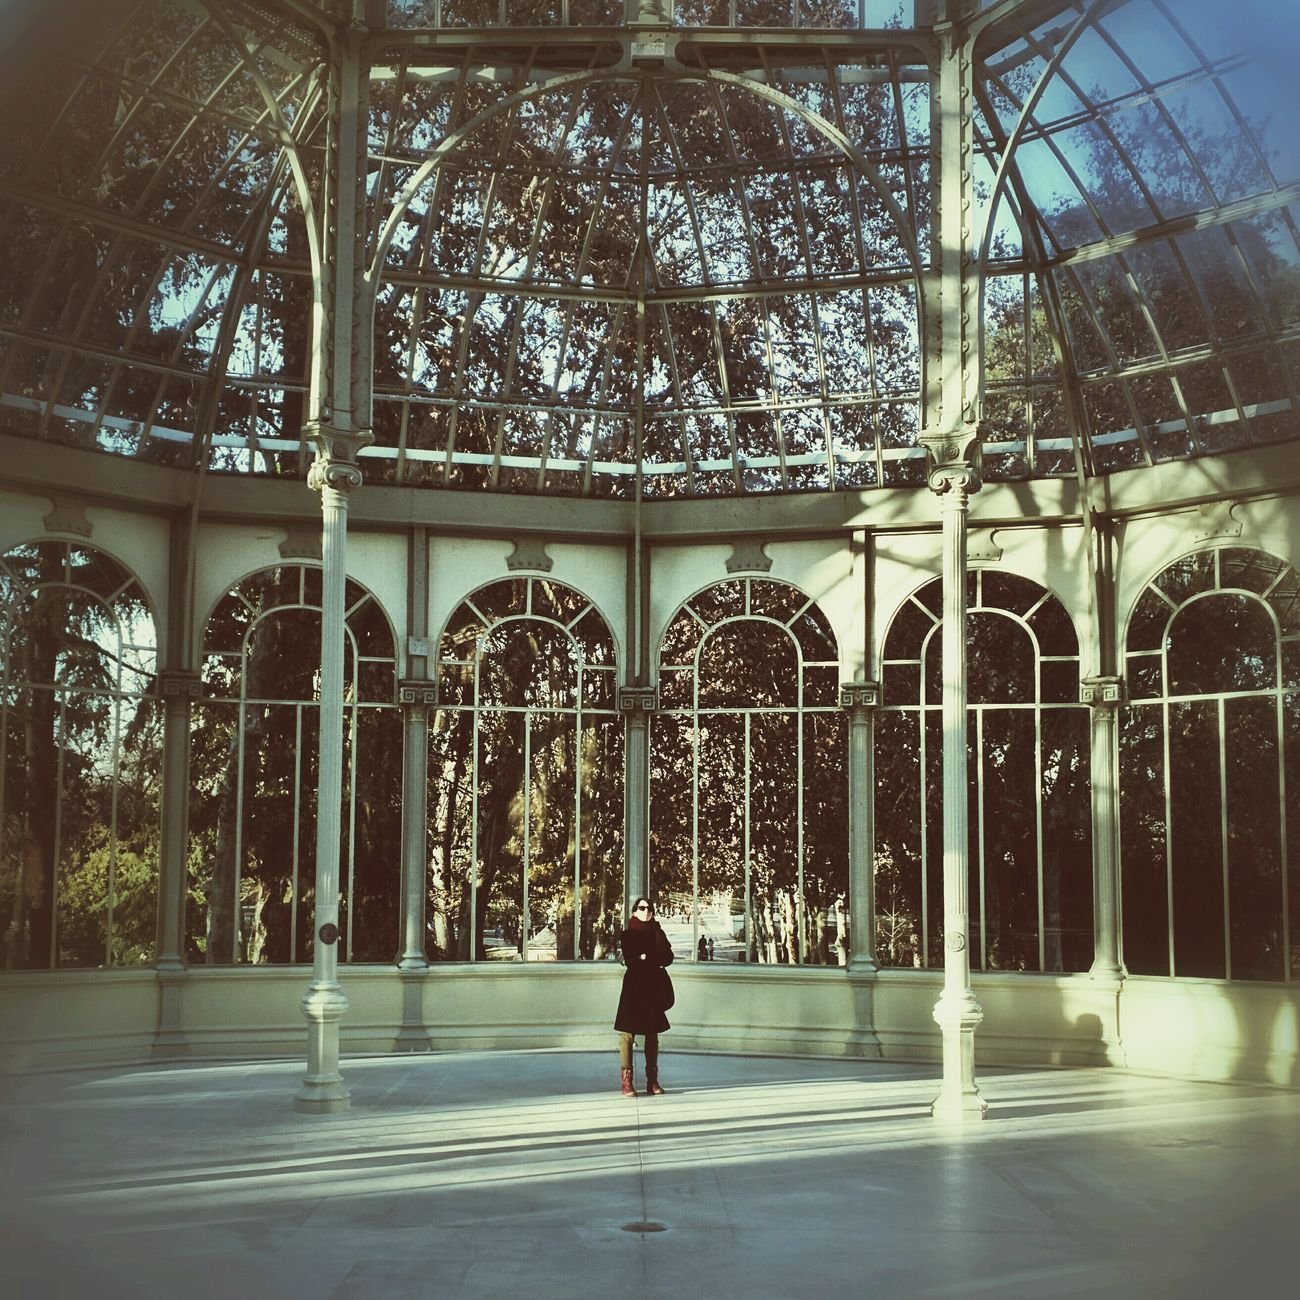 Post-lunch walk in El Retiro